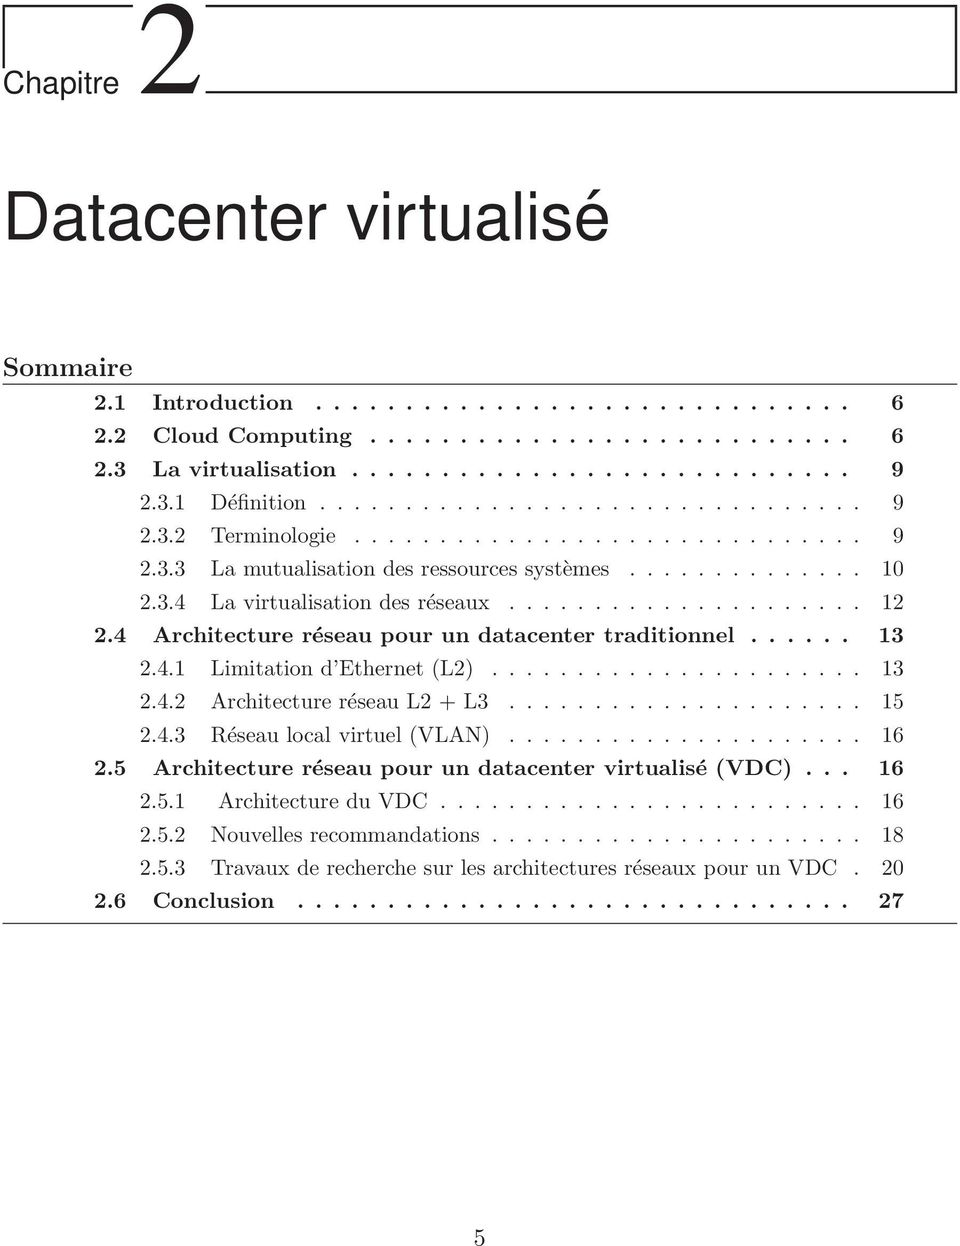 4 Architecture réseau pour un datacenter traditionnel...... 13 2.4.1 Limitation d Ethernet (L2)...................... 13 2.4.2 Architecture réseau L2 + L3..................... 15 2.4.3 Réseau local virtuel (VLAN).